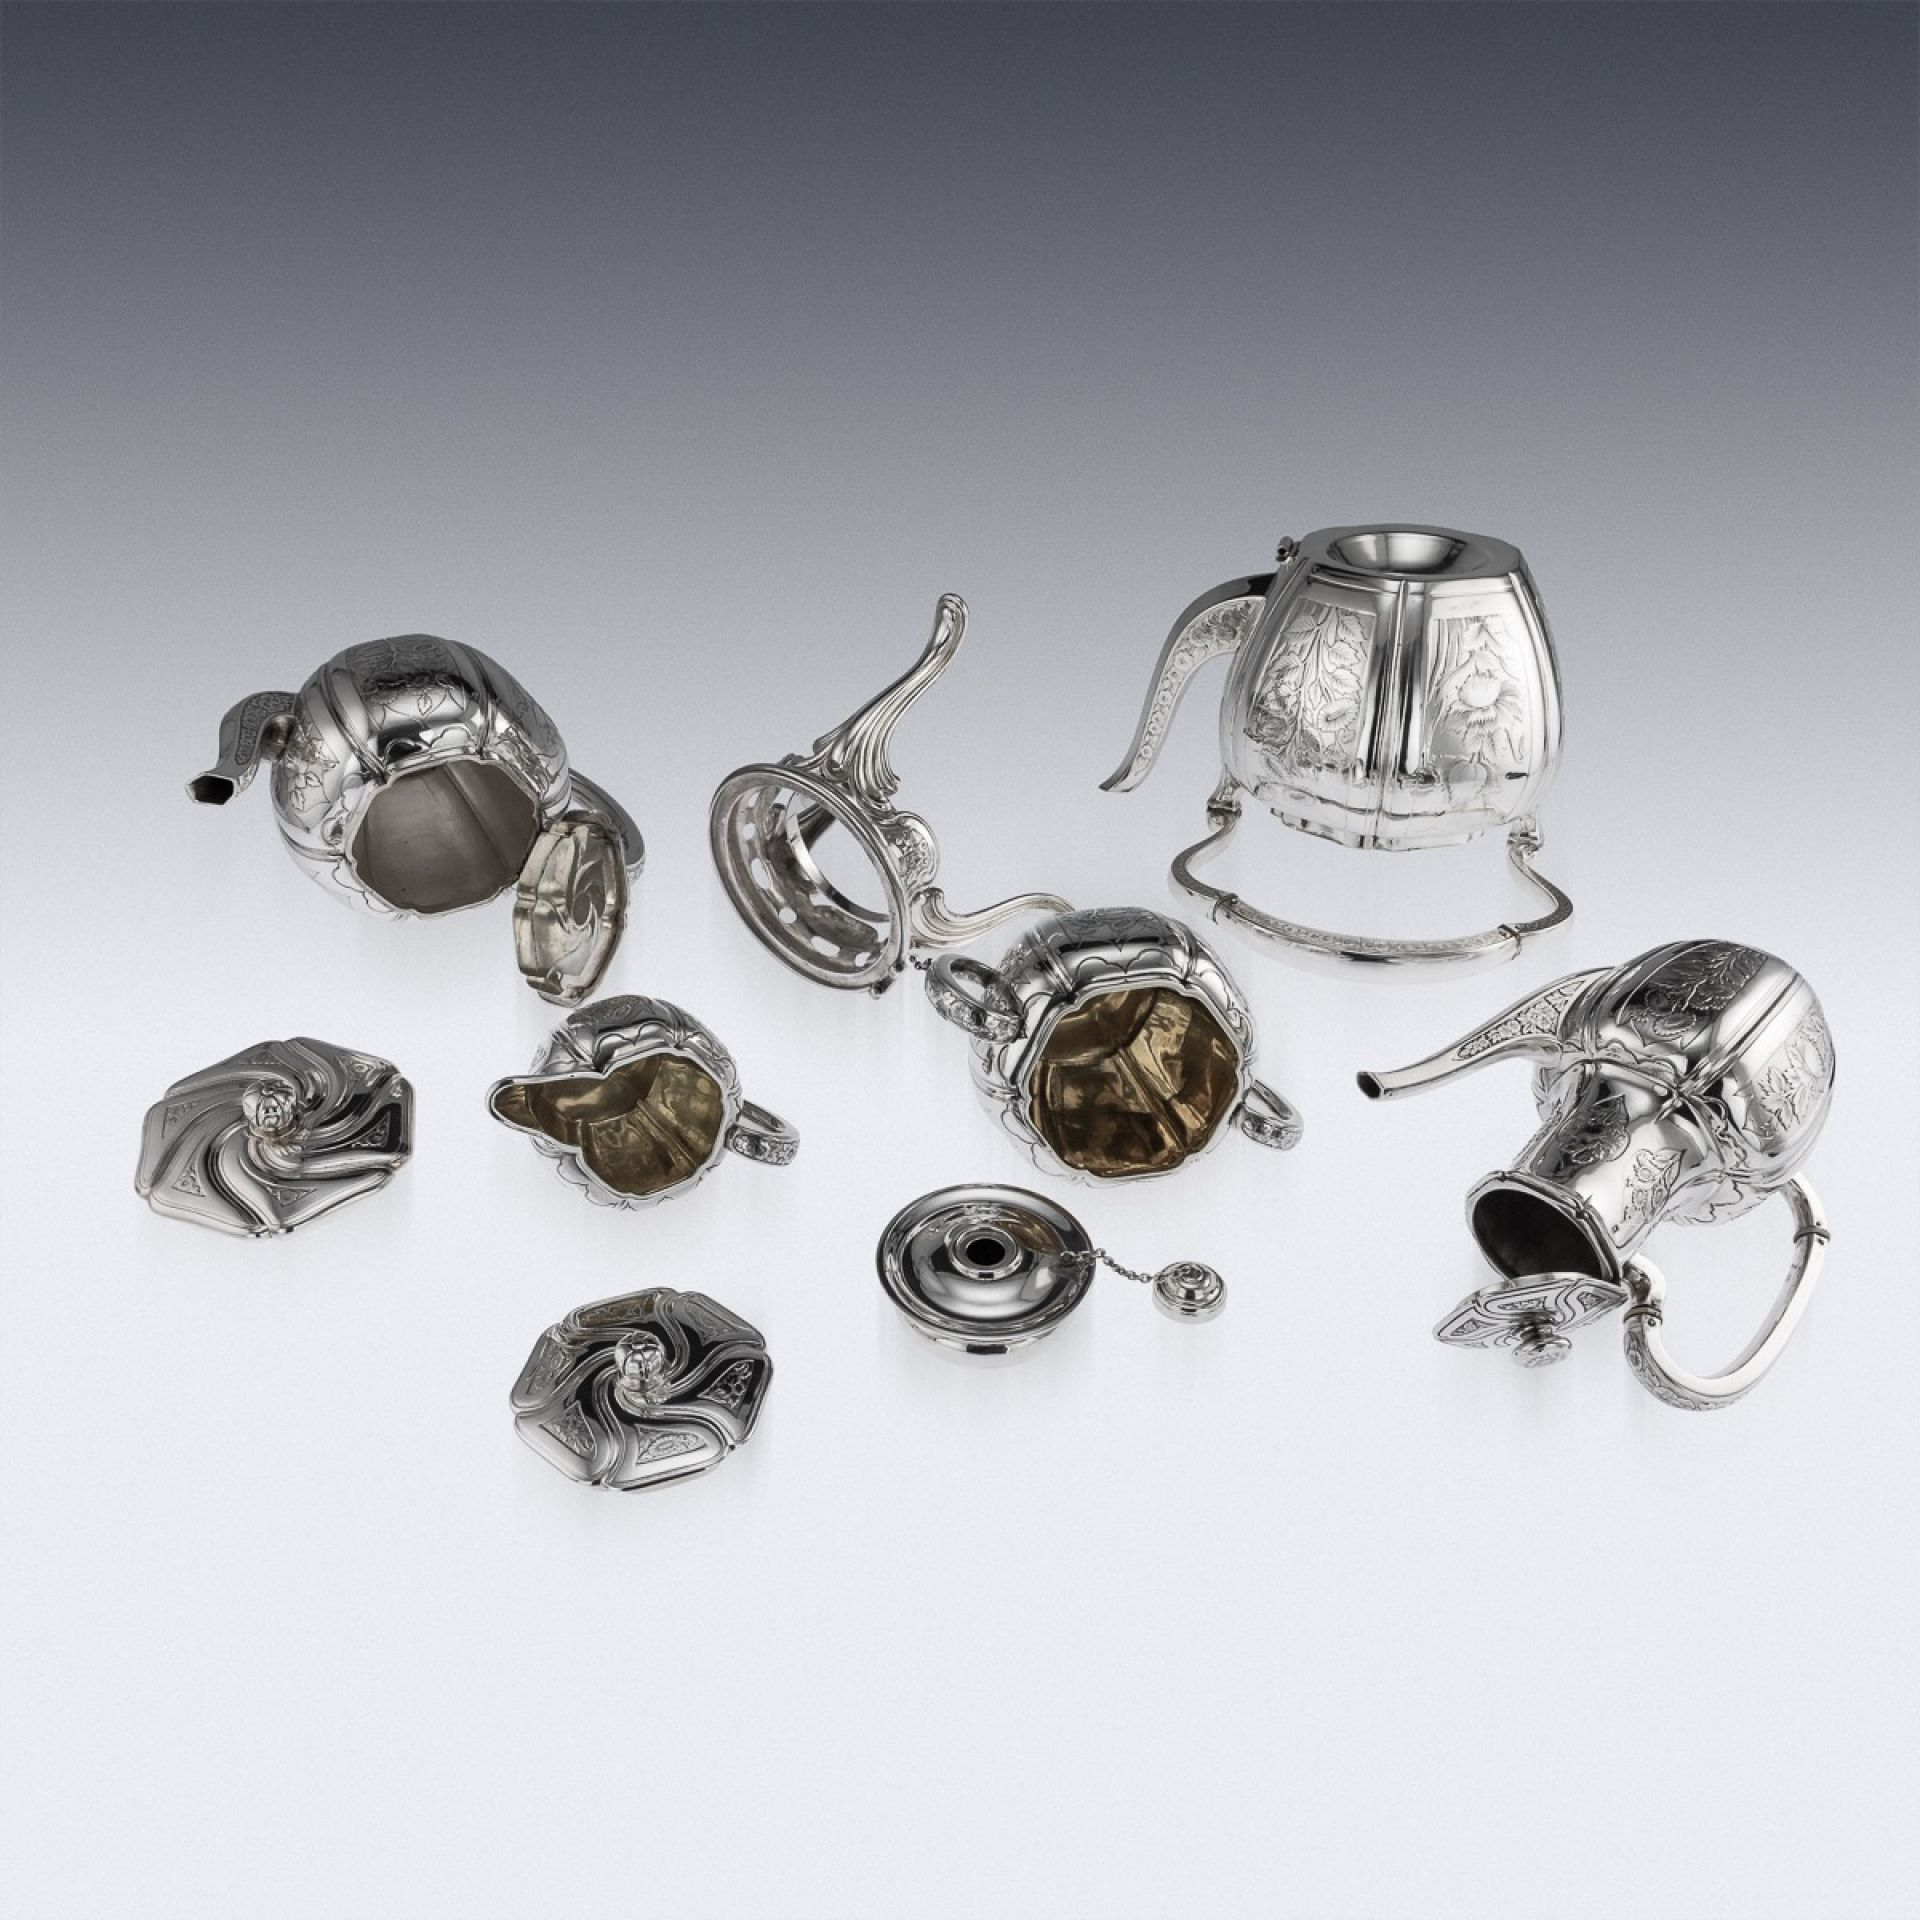 ANTIQUE 19thC FRENCH SOLID SILVER FIVE PIECE TEA SERVICE, ODIOT c.1880